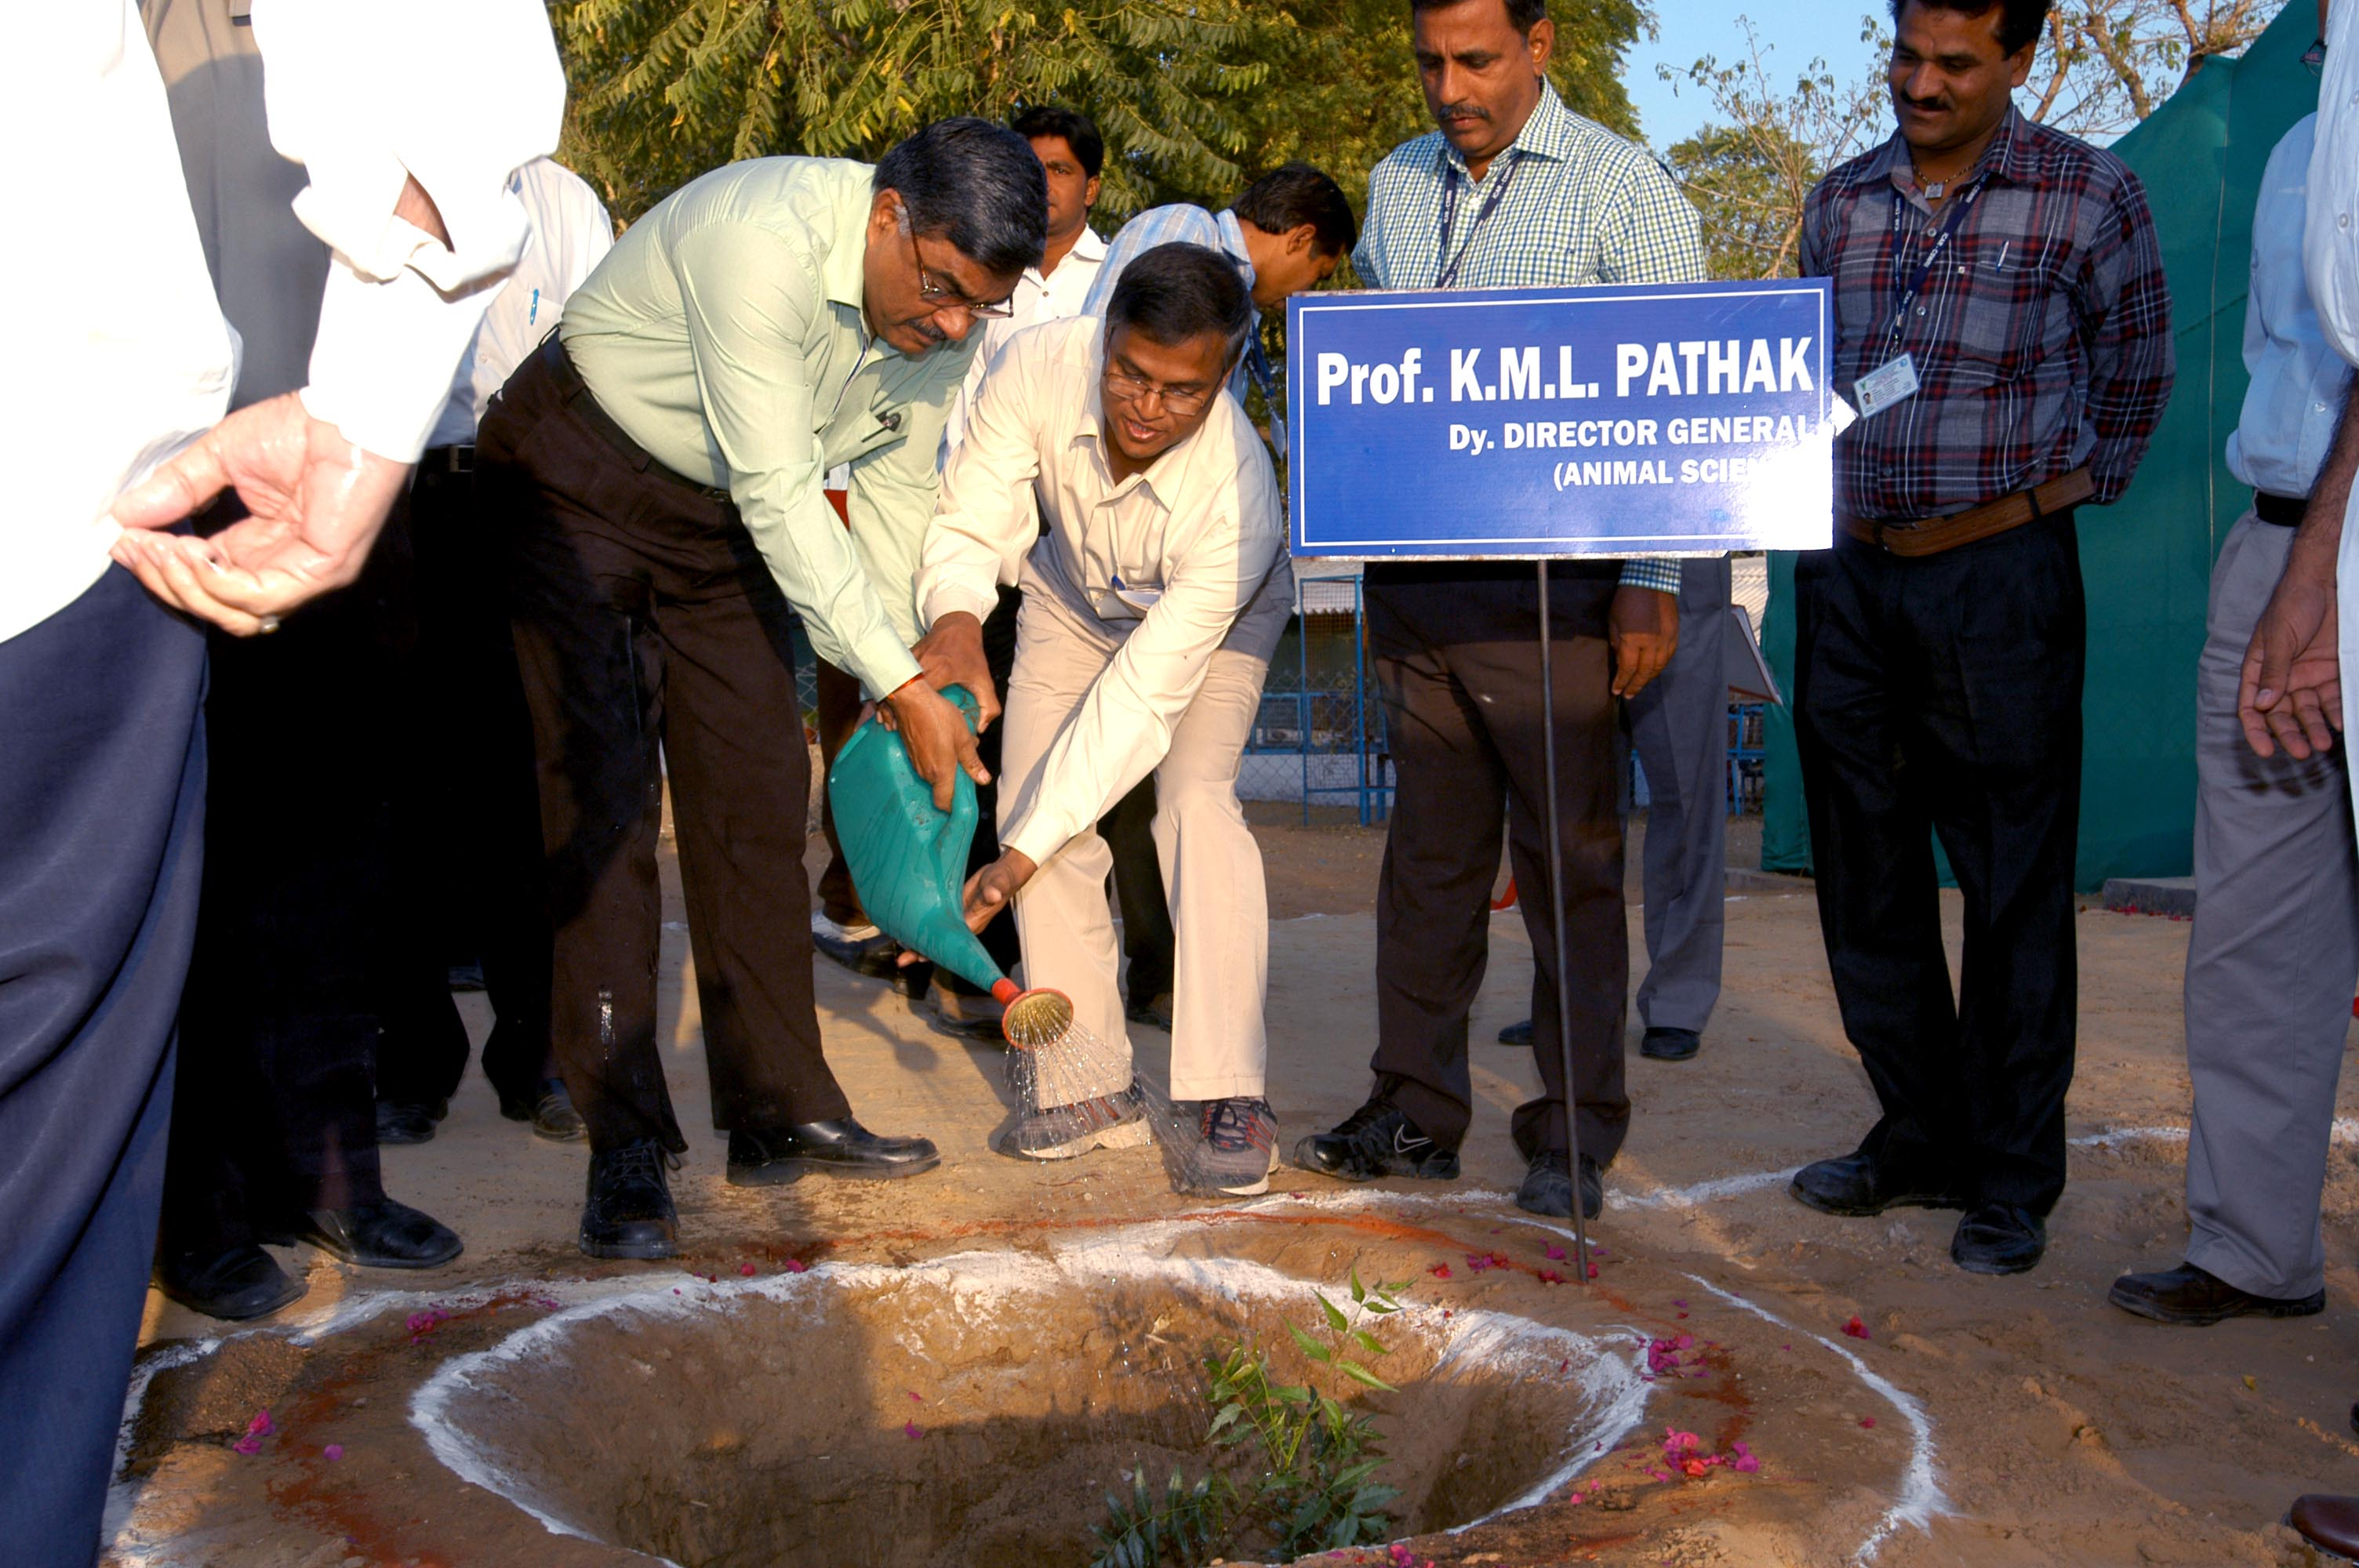 PLantation for Green Enveronment @ CSWRI Campus